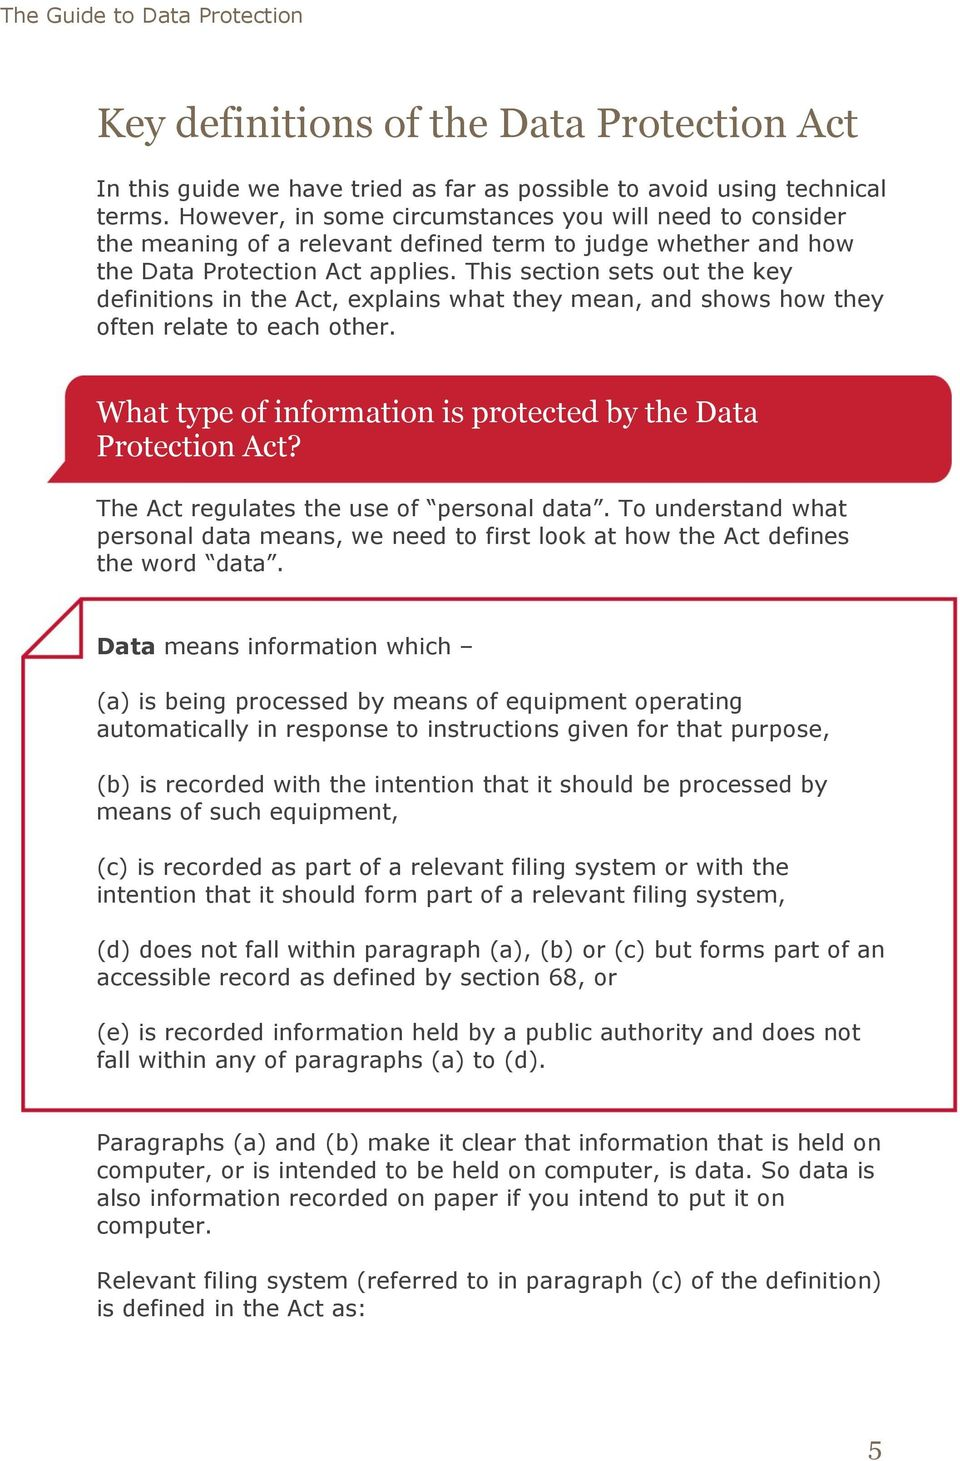 This section sets out the key definitions in the Act, explains what they mean, and shows how they often relate to each other. What type of information is protected by the Data Protection Act?